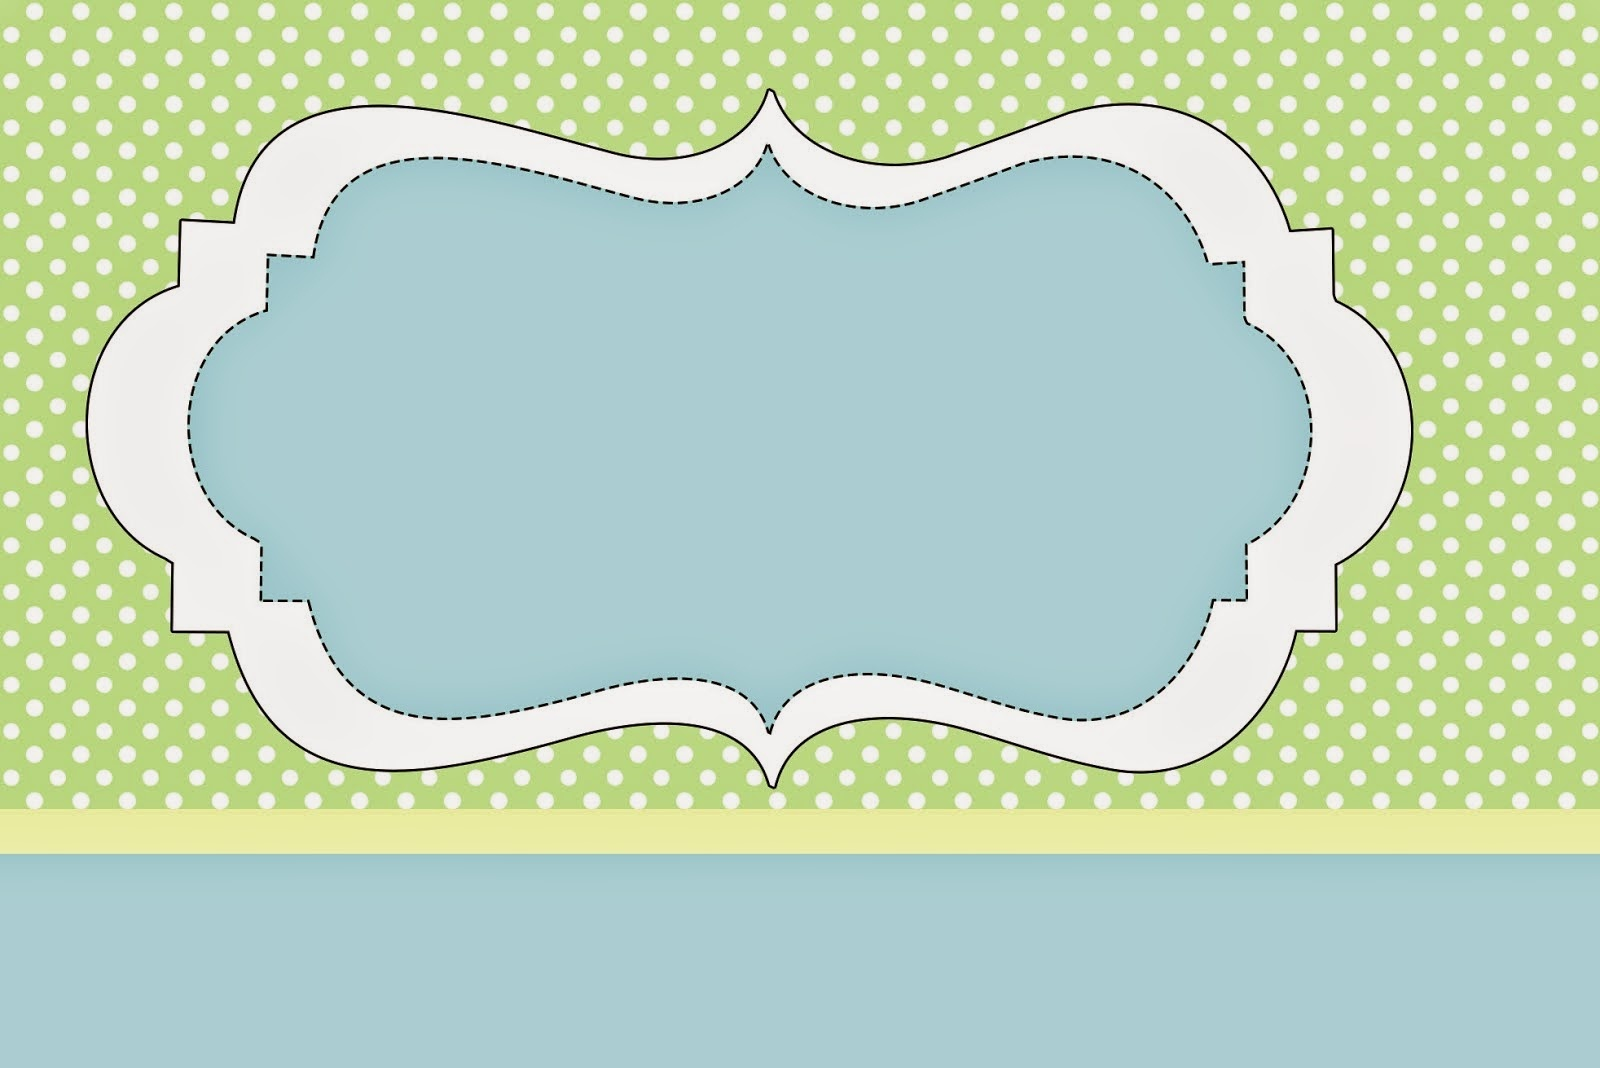 Sweet 16 Green And Light Blue: Free Printable Invitations. | Oh My - Free Printable Sweet 16 Labels